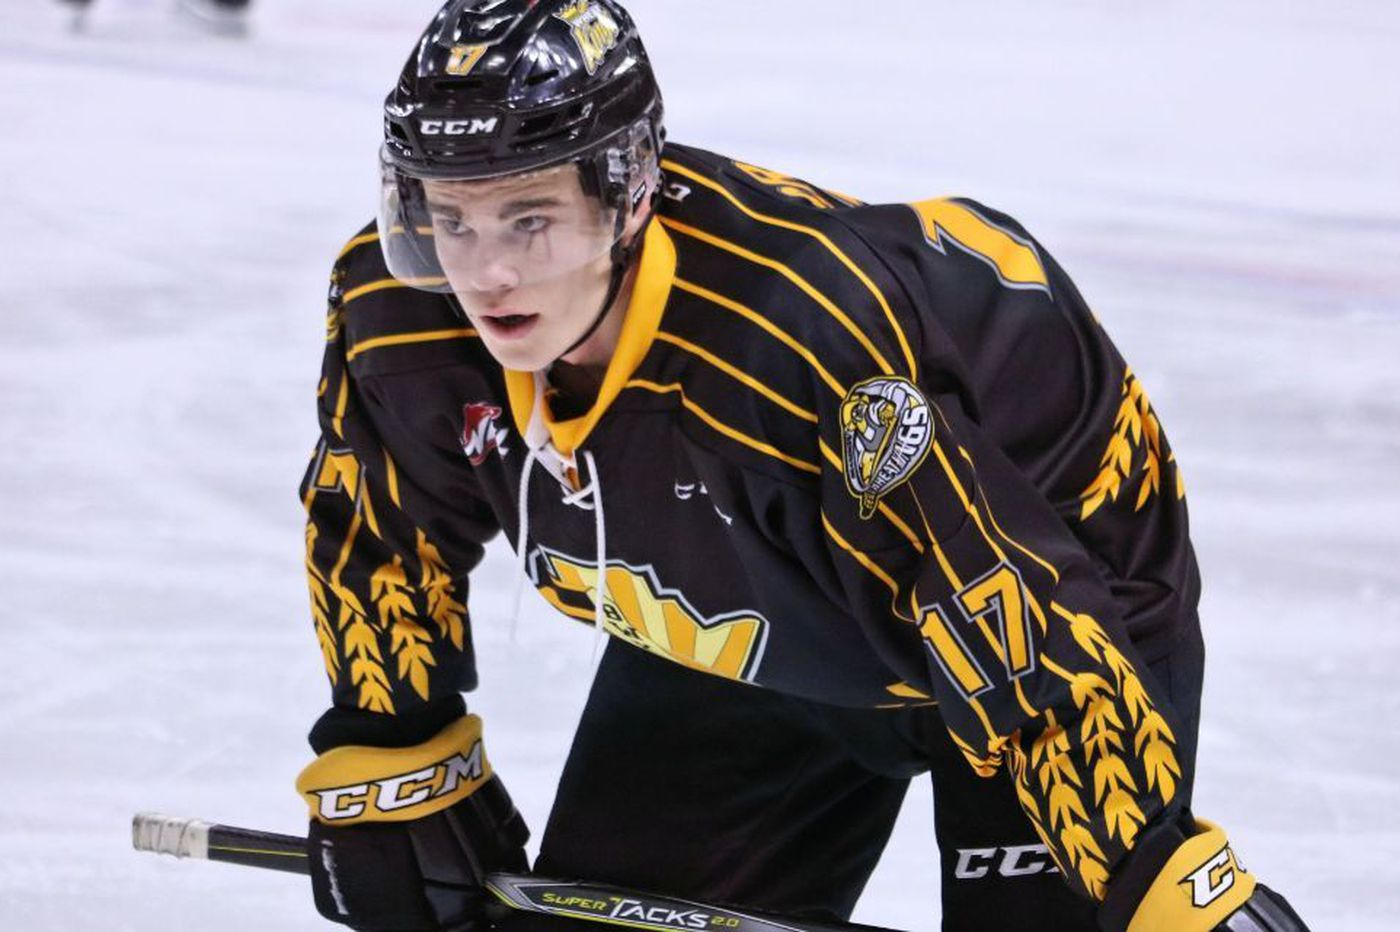 The Flyers should select Jacob Perreault if he's available in the NHL draft   Sam Carchidi